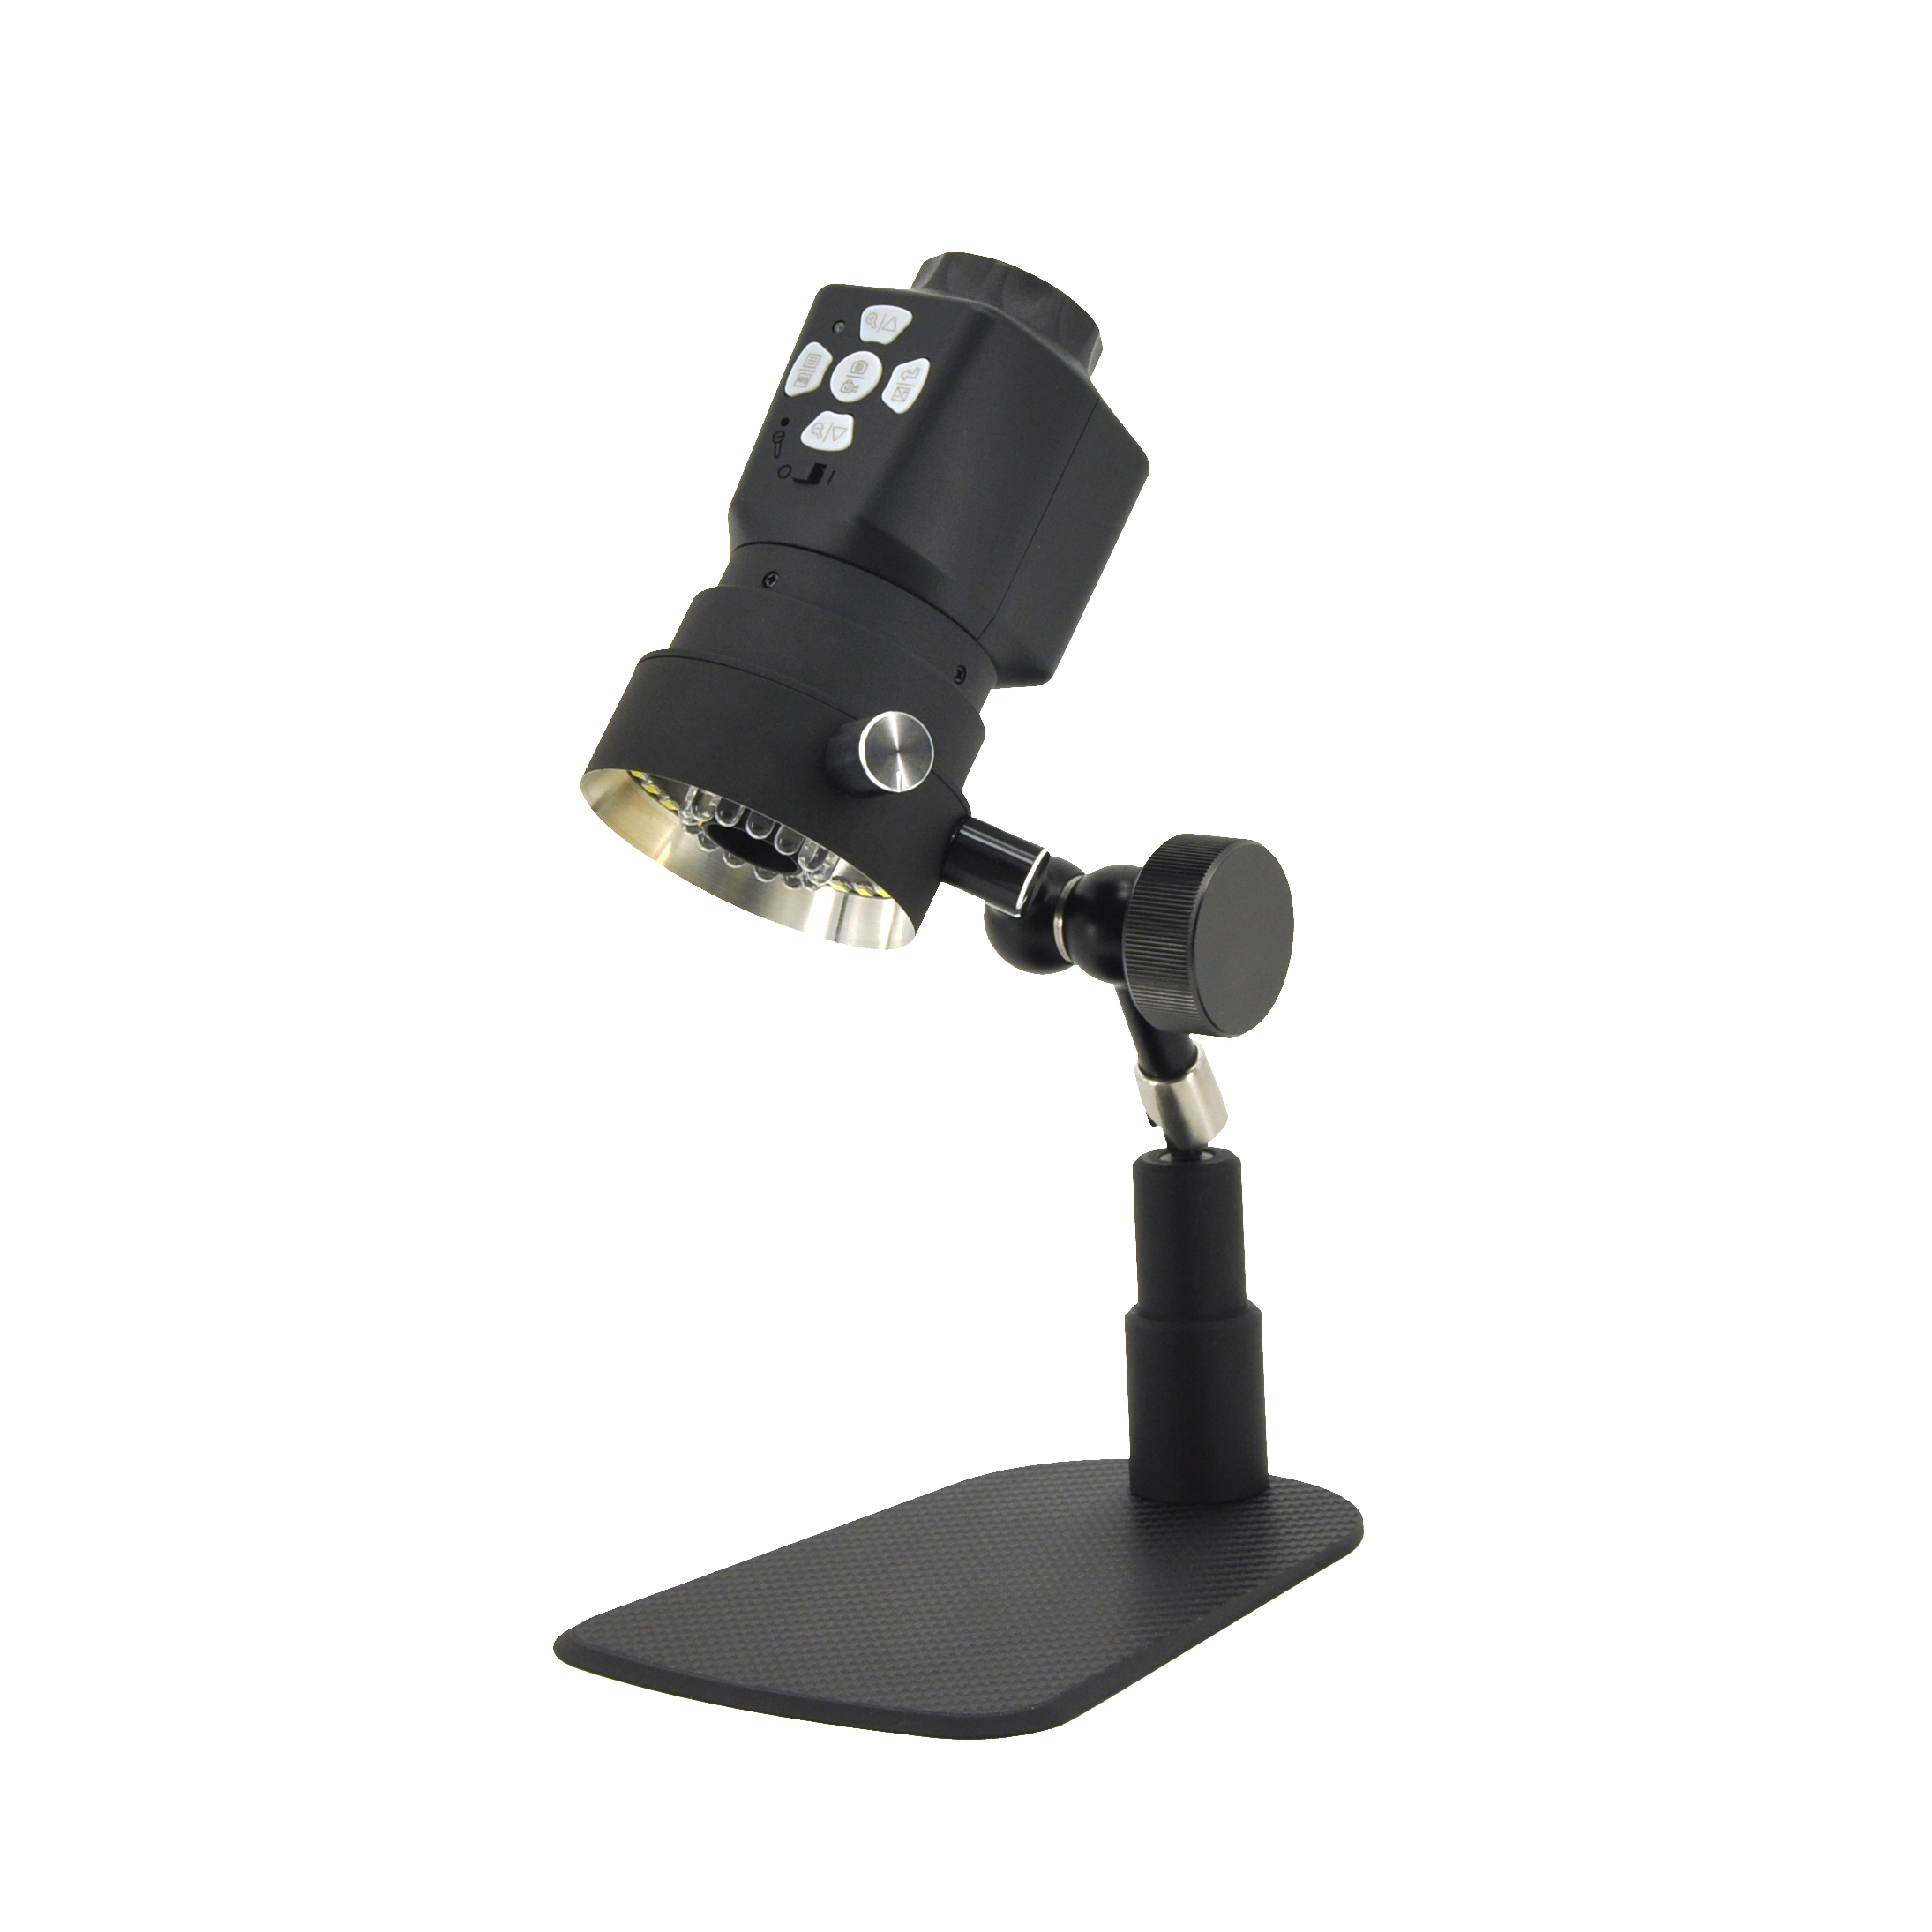 Eagle HD by GX Microscopes